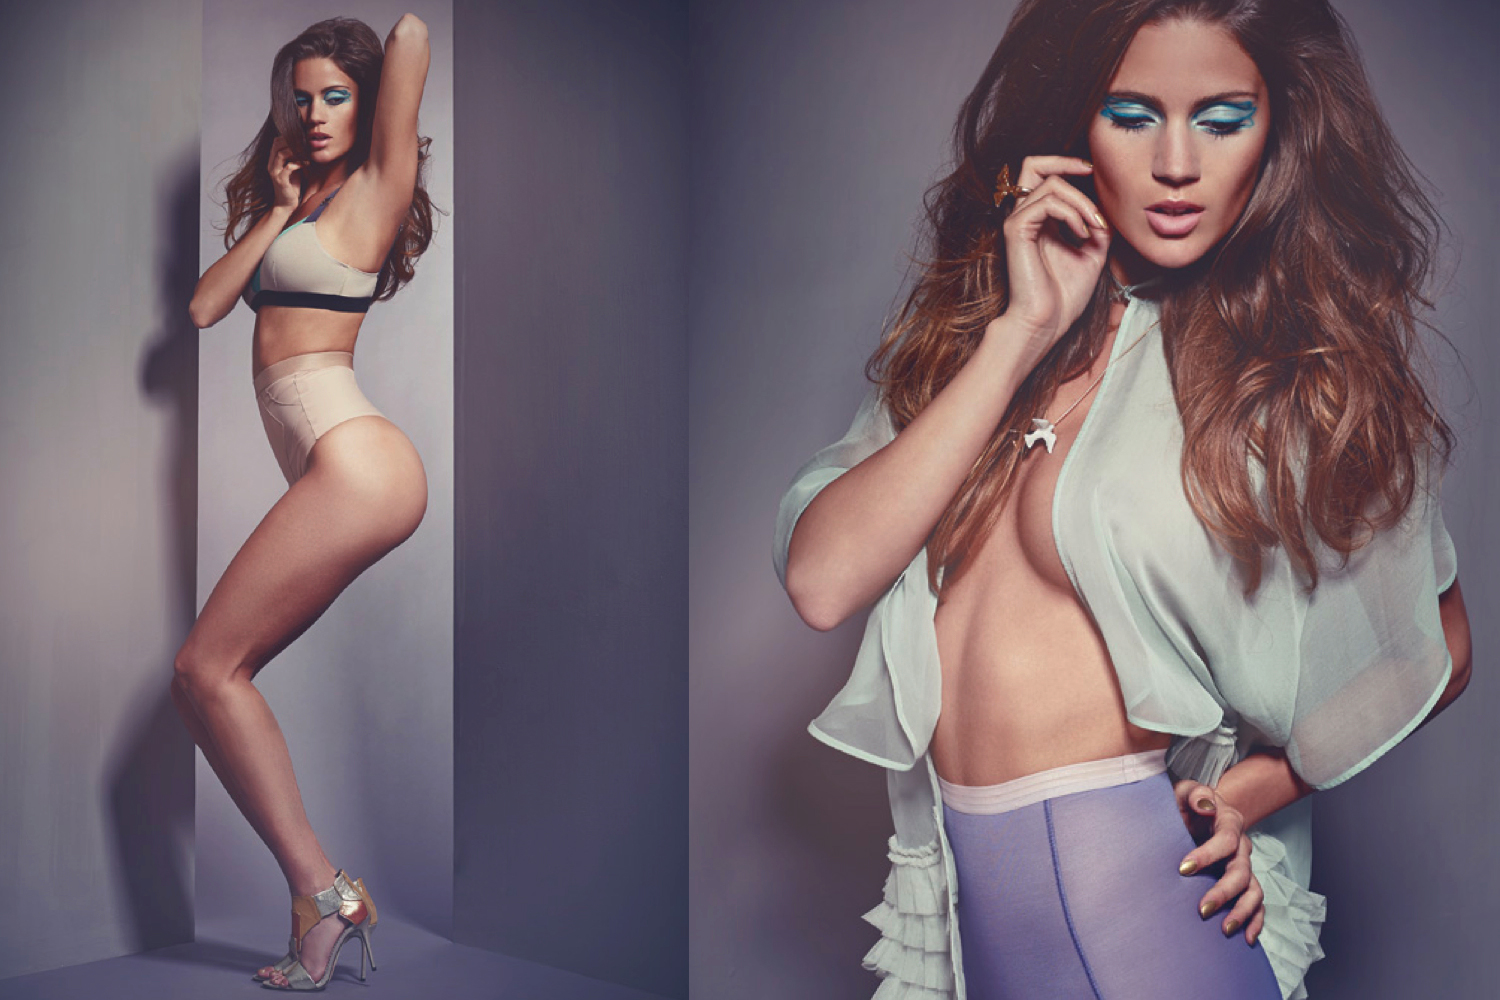 Astrid M Obert Presents Cocoon Magazine - A touch of lace